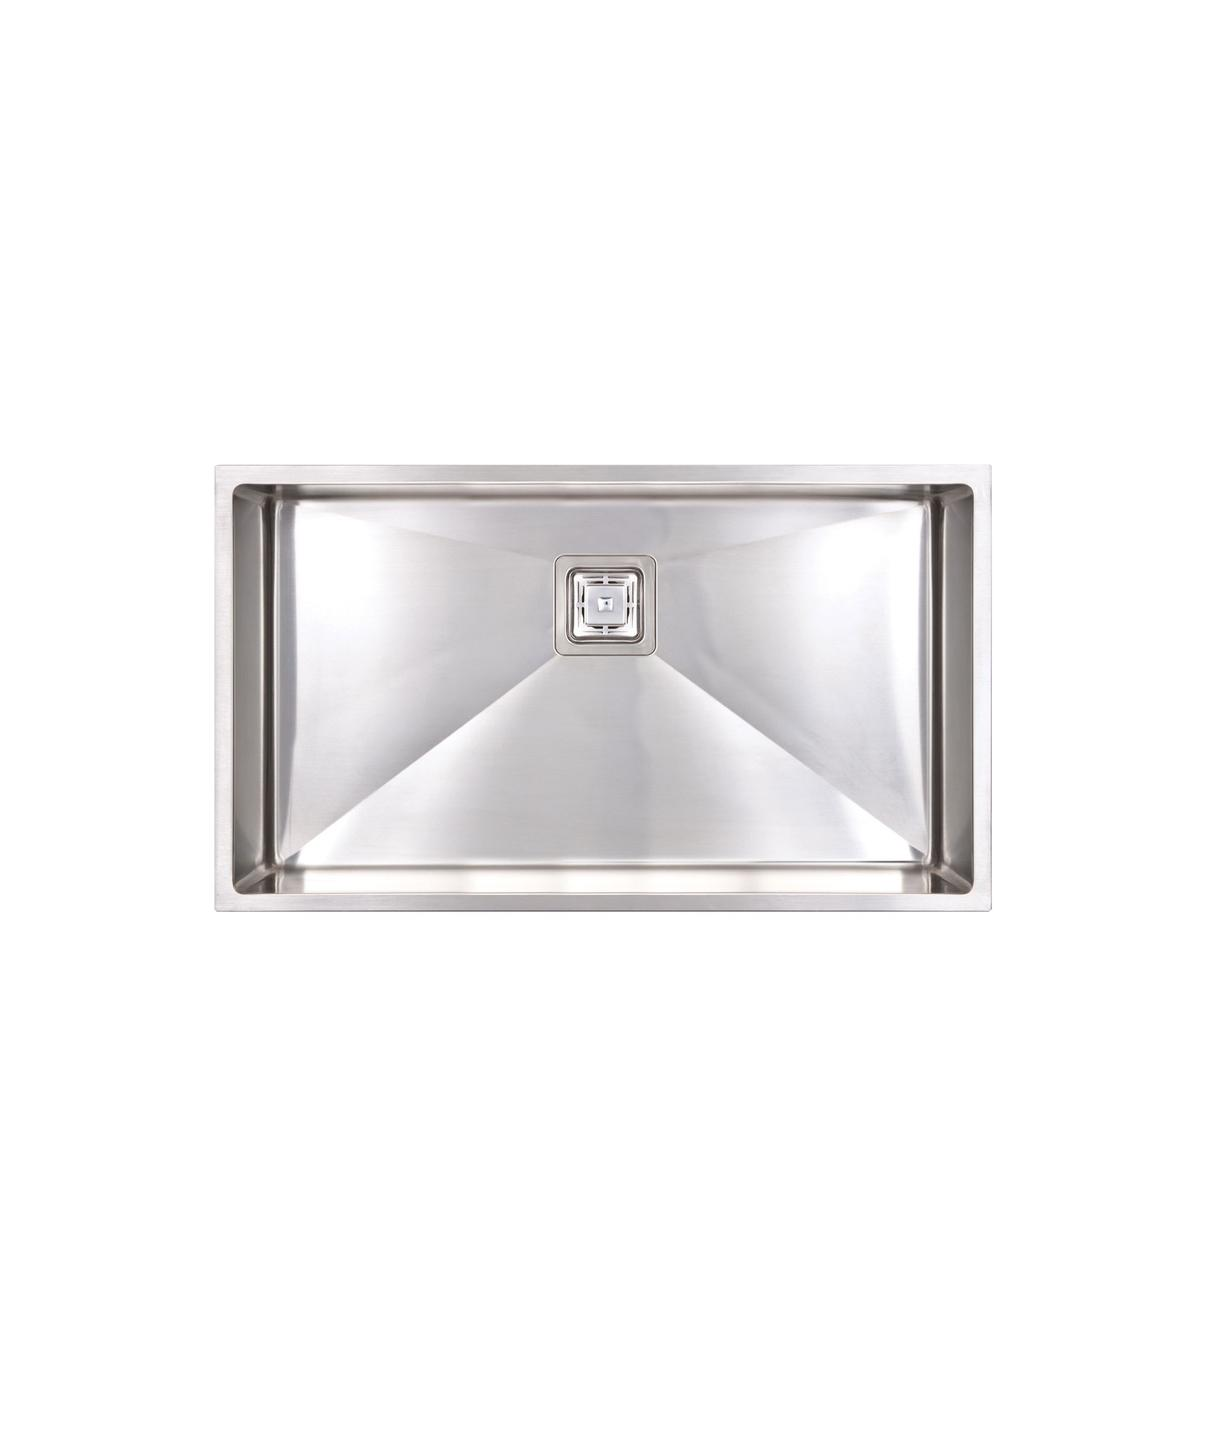 SEIMA EVA 620 CERAMIC BASIN LAUNDRY TROUGH